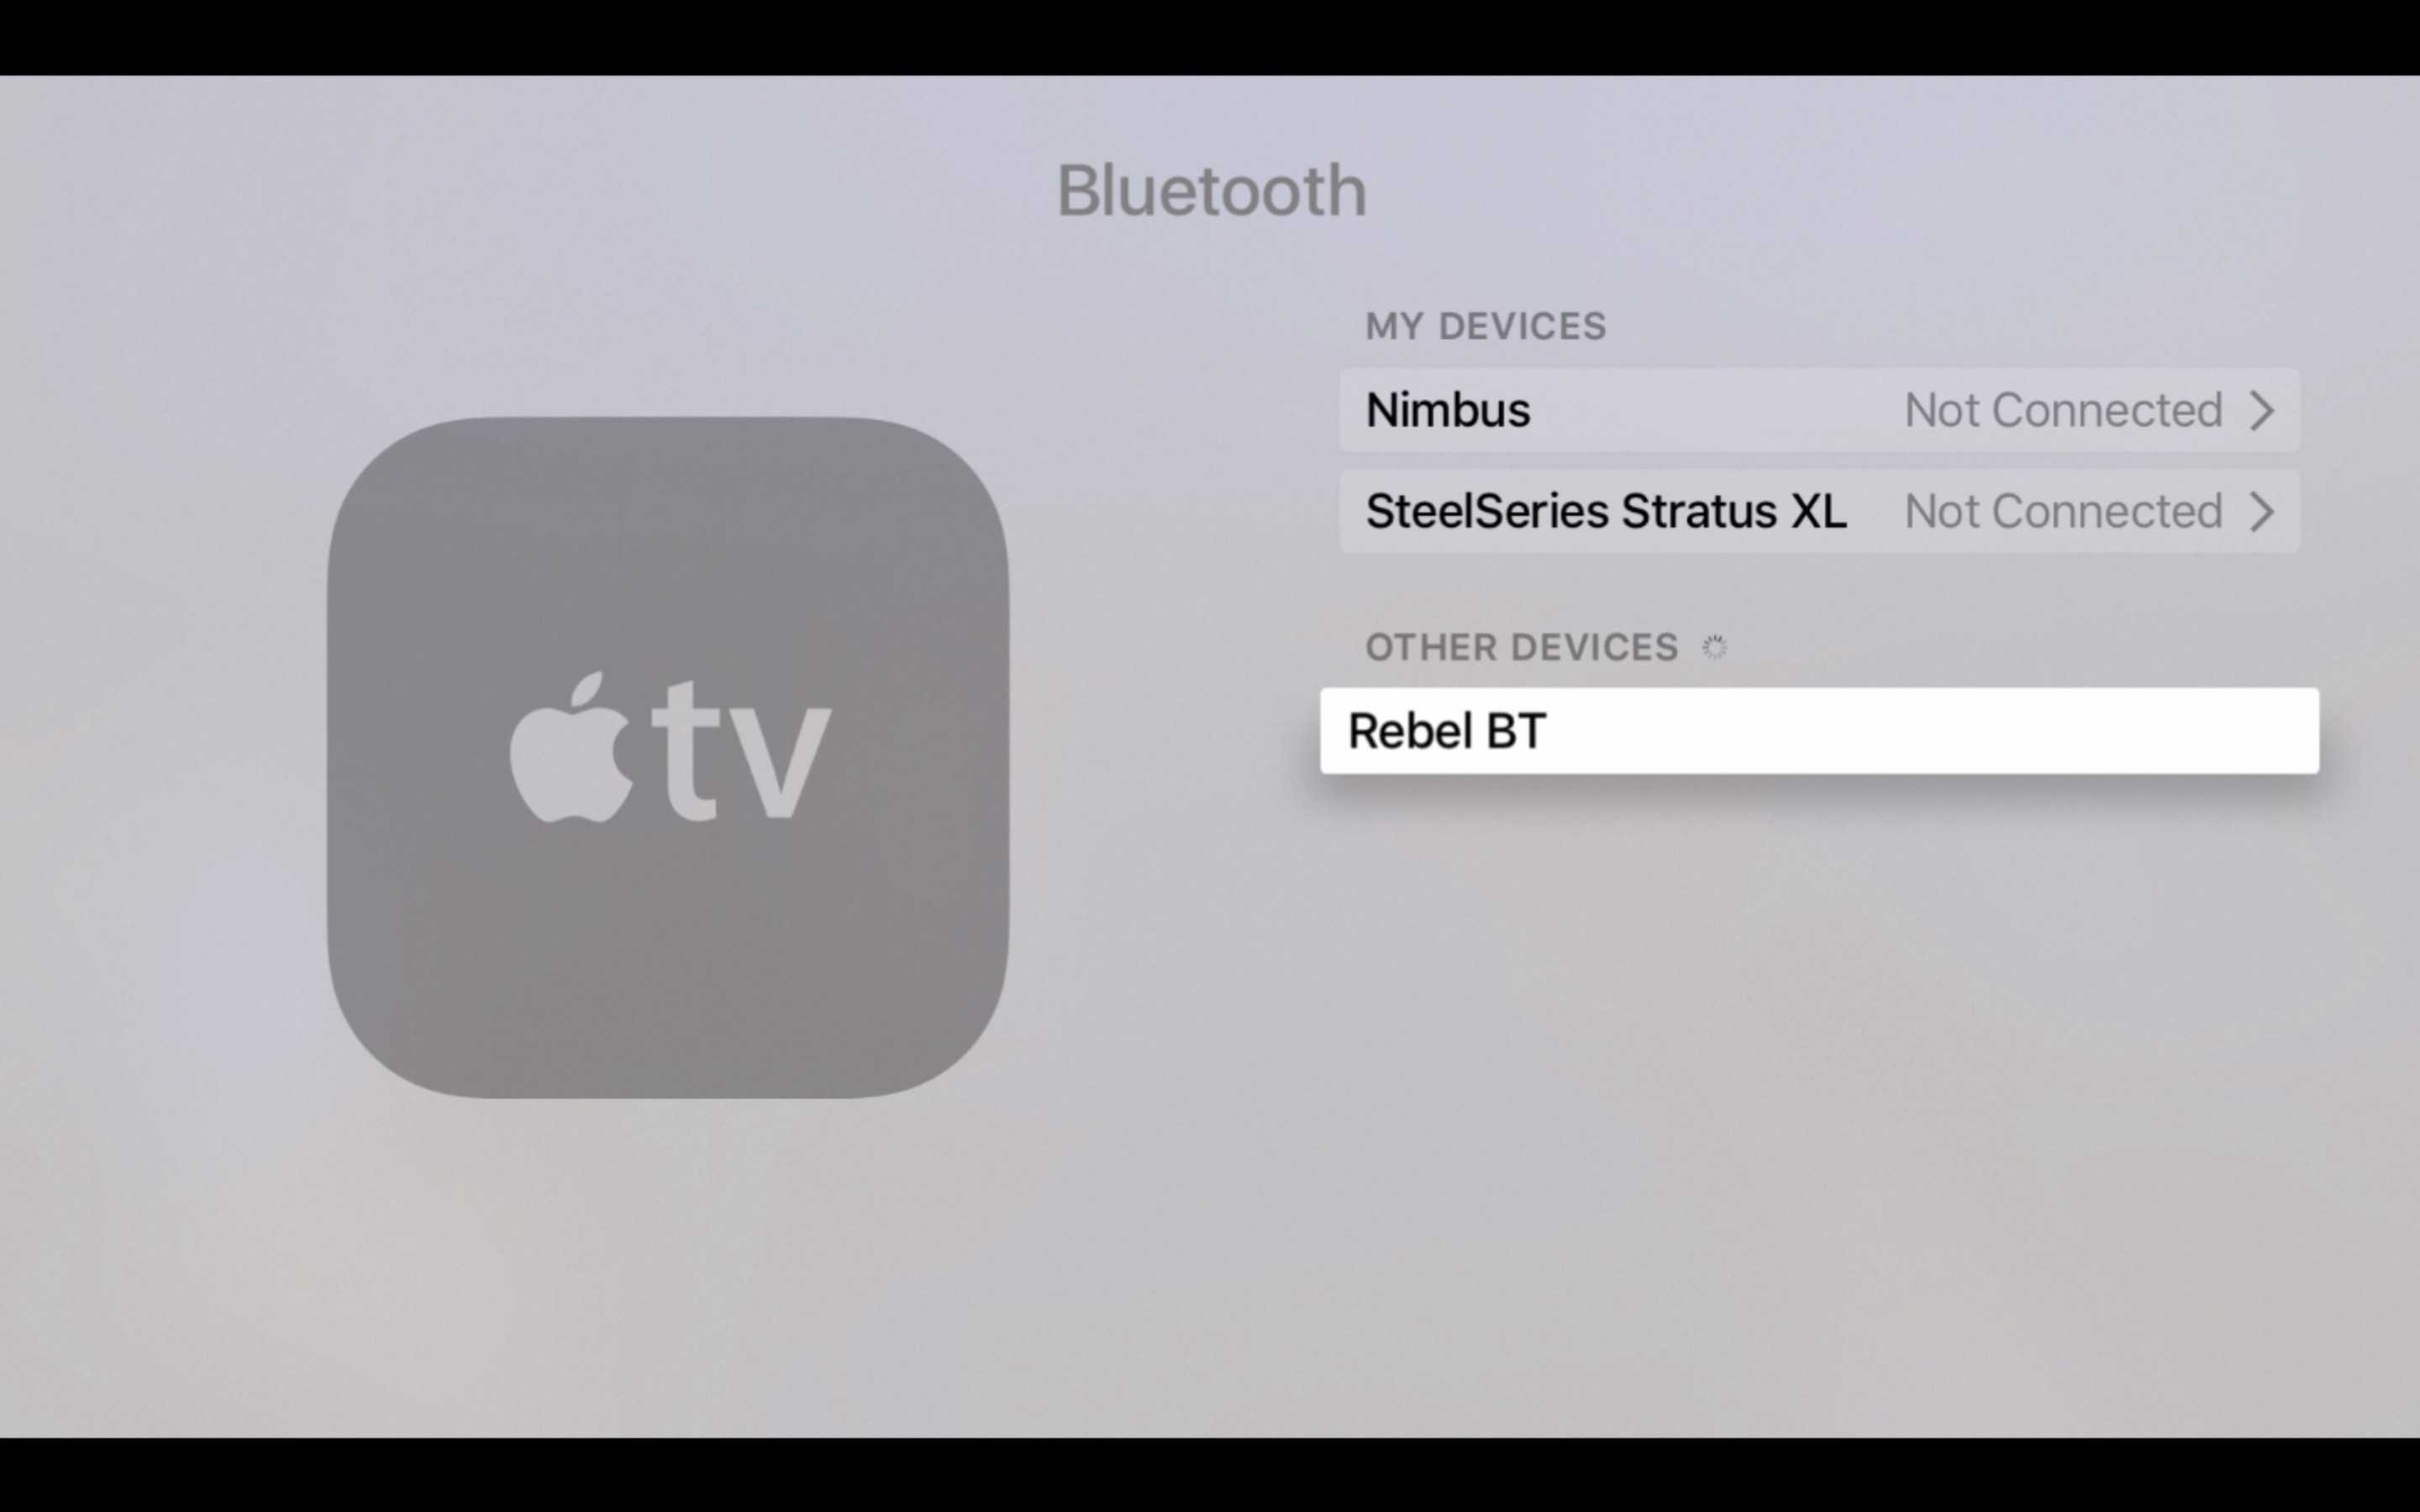 Apple tv will find any nearby bt accessories in pairing mode